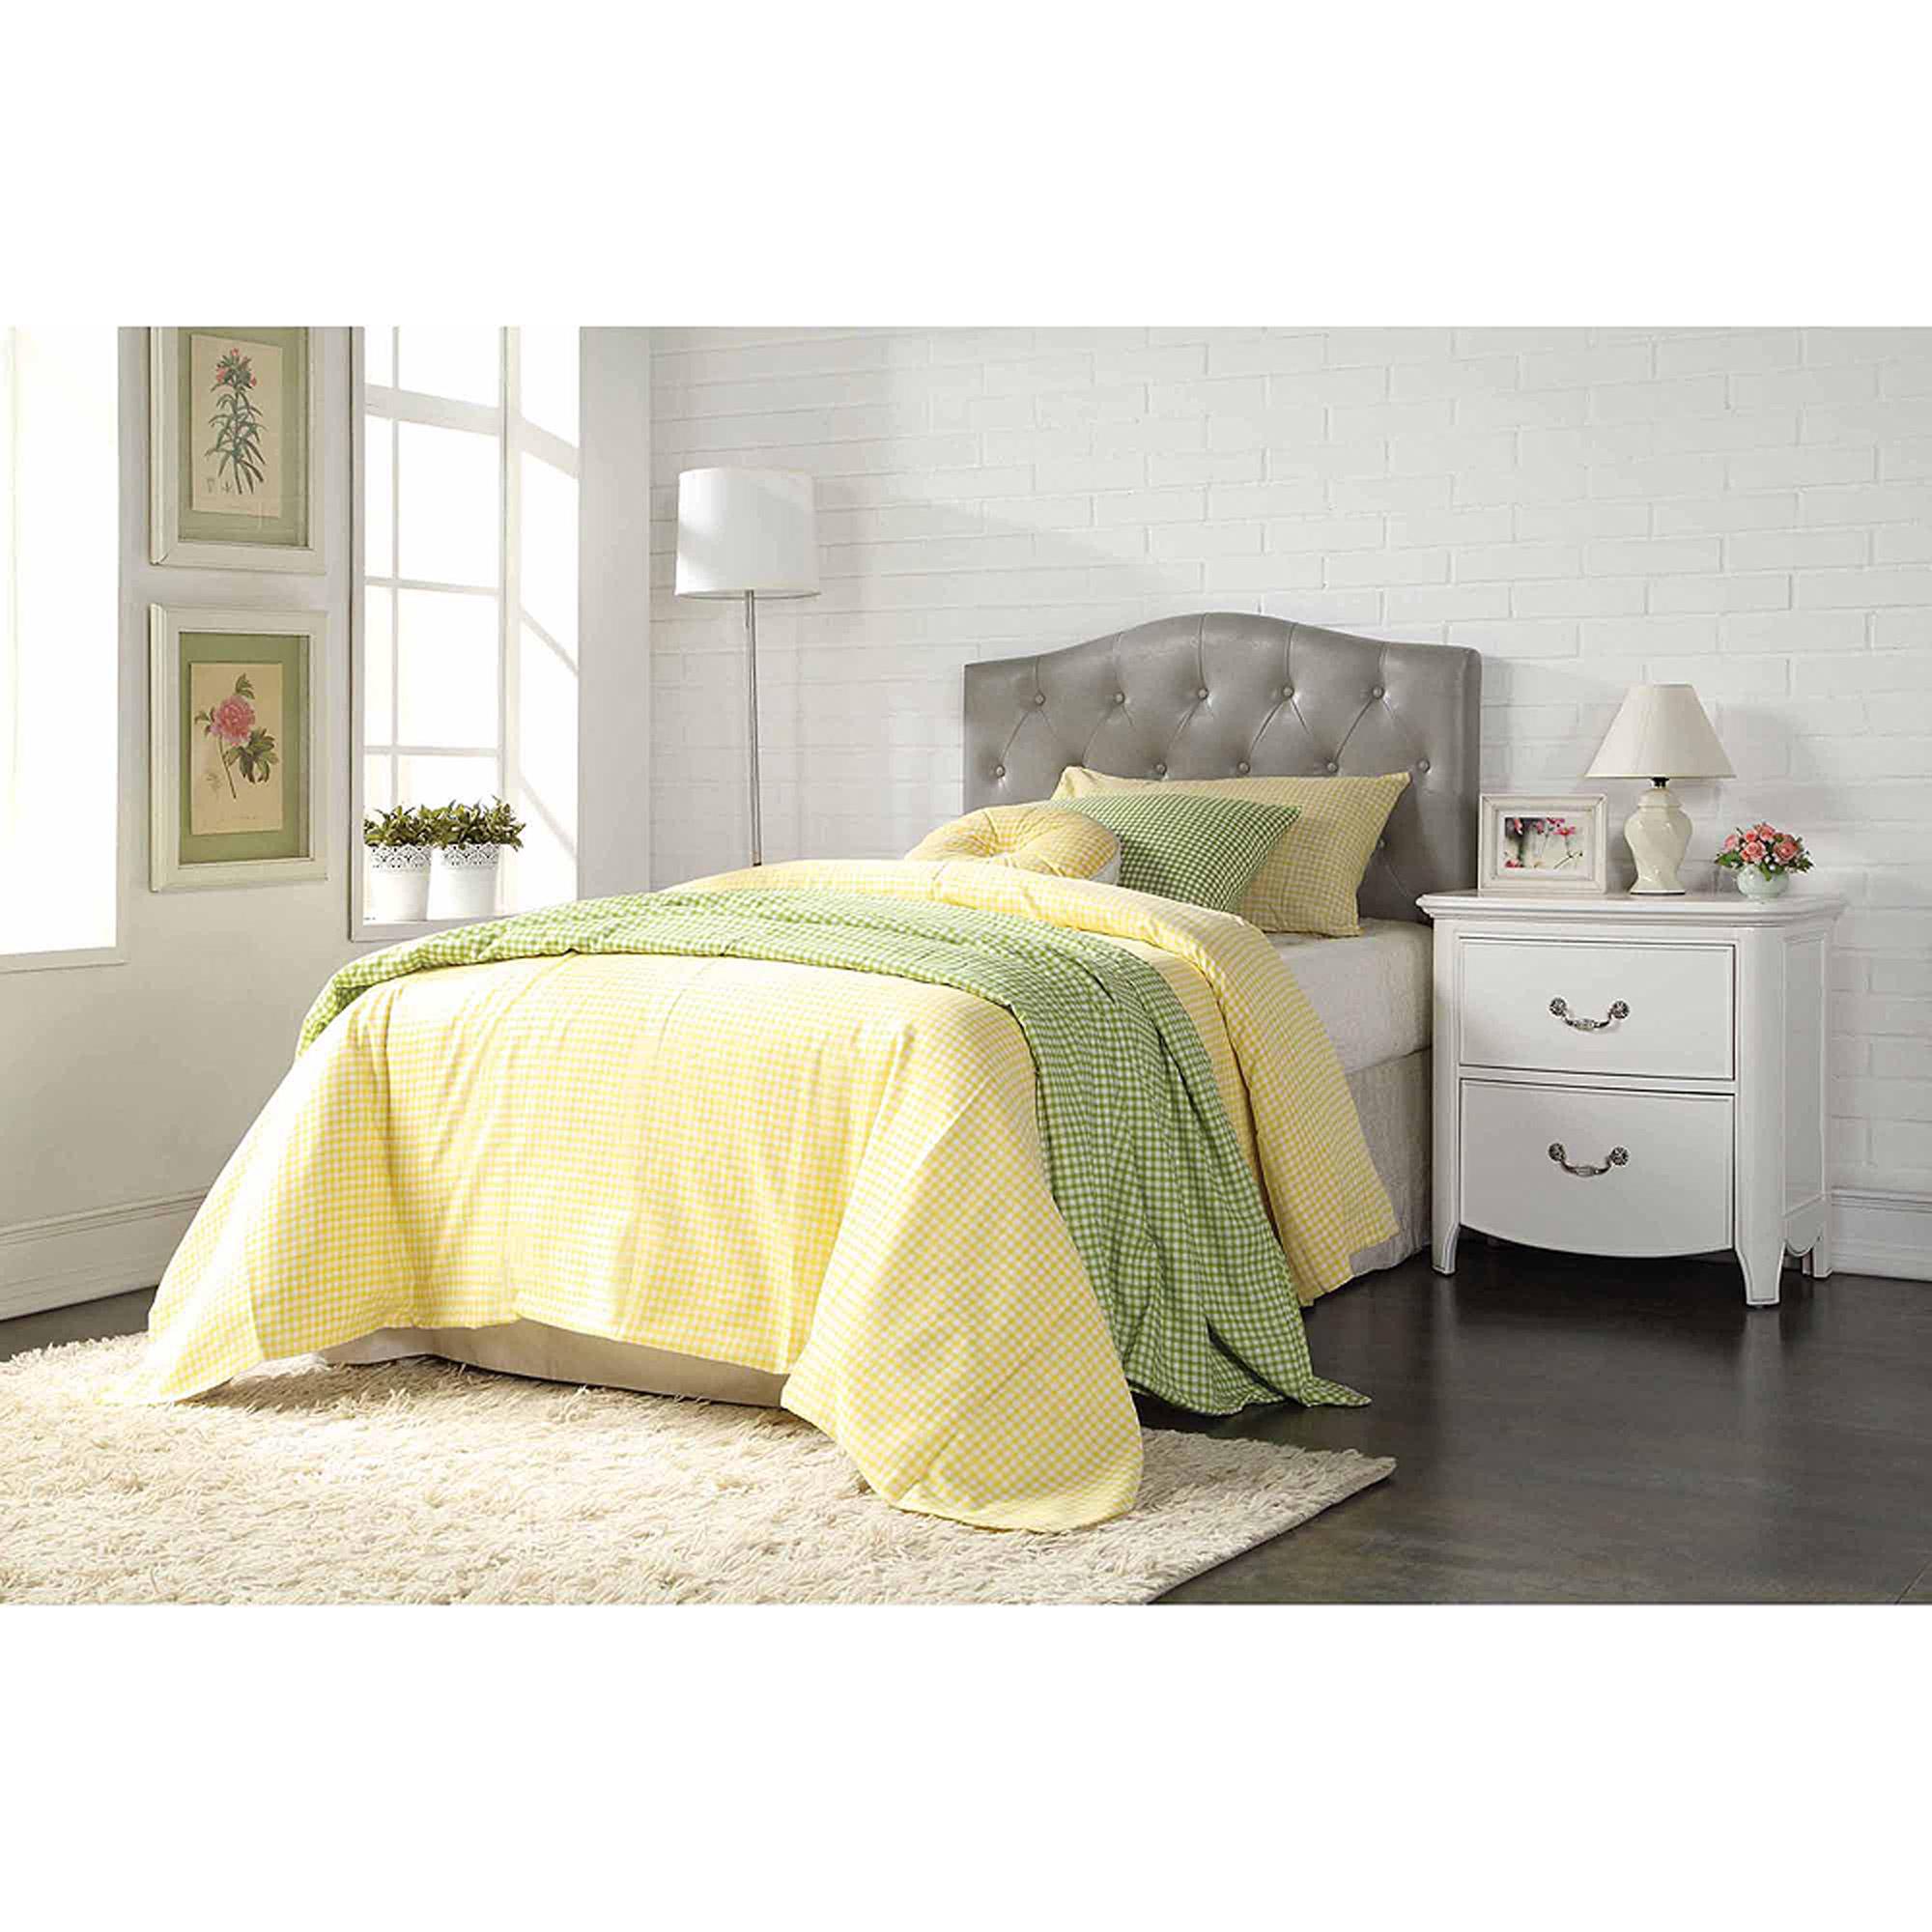 ACME Furniture Viola Gray PU Queen/Full Headboard